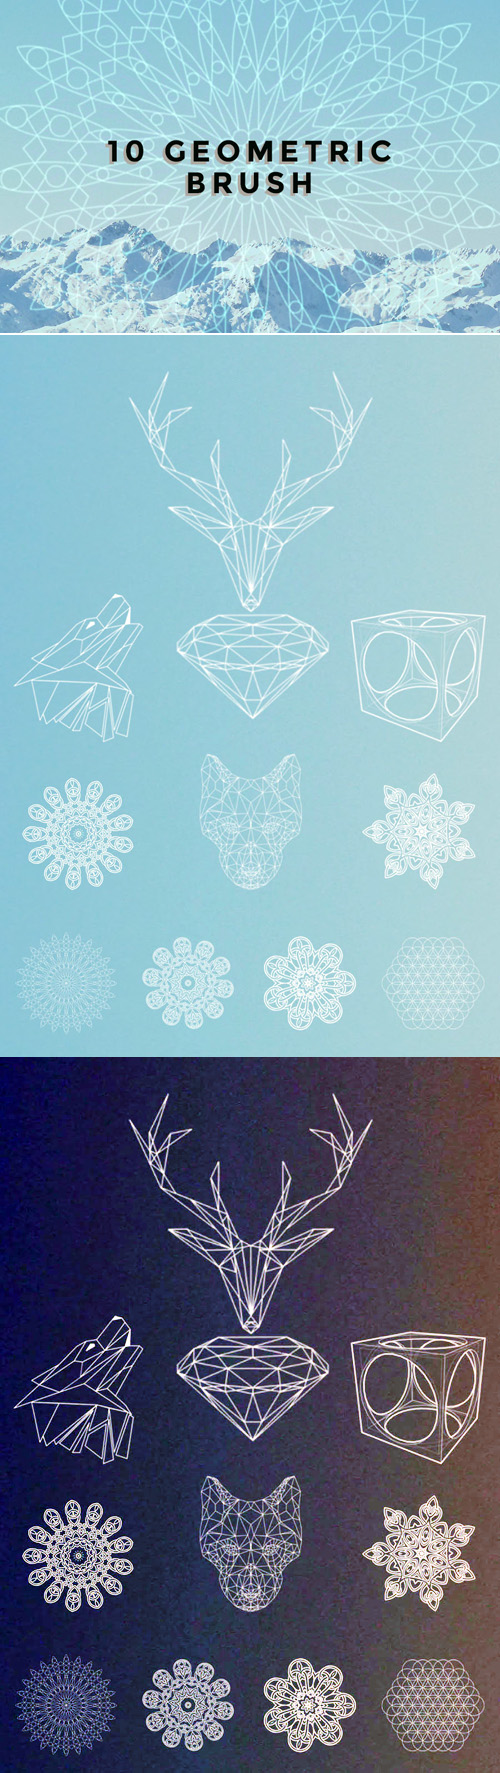 10 Geometric Brushes for Photoshop